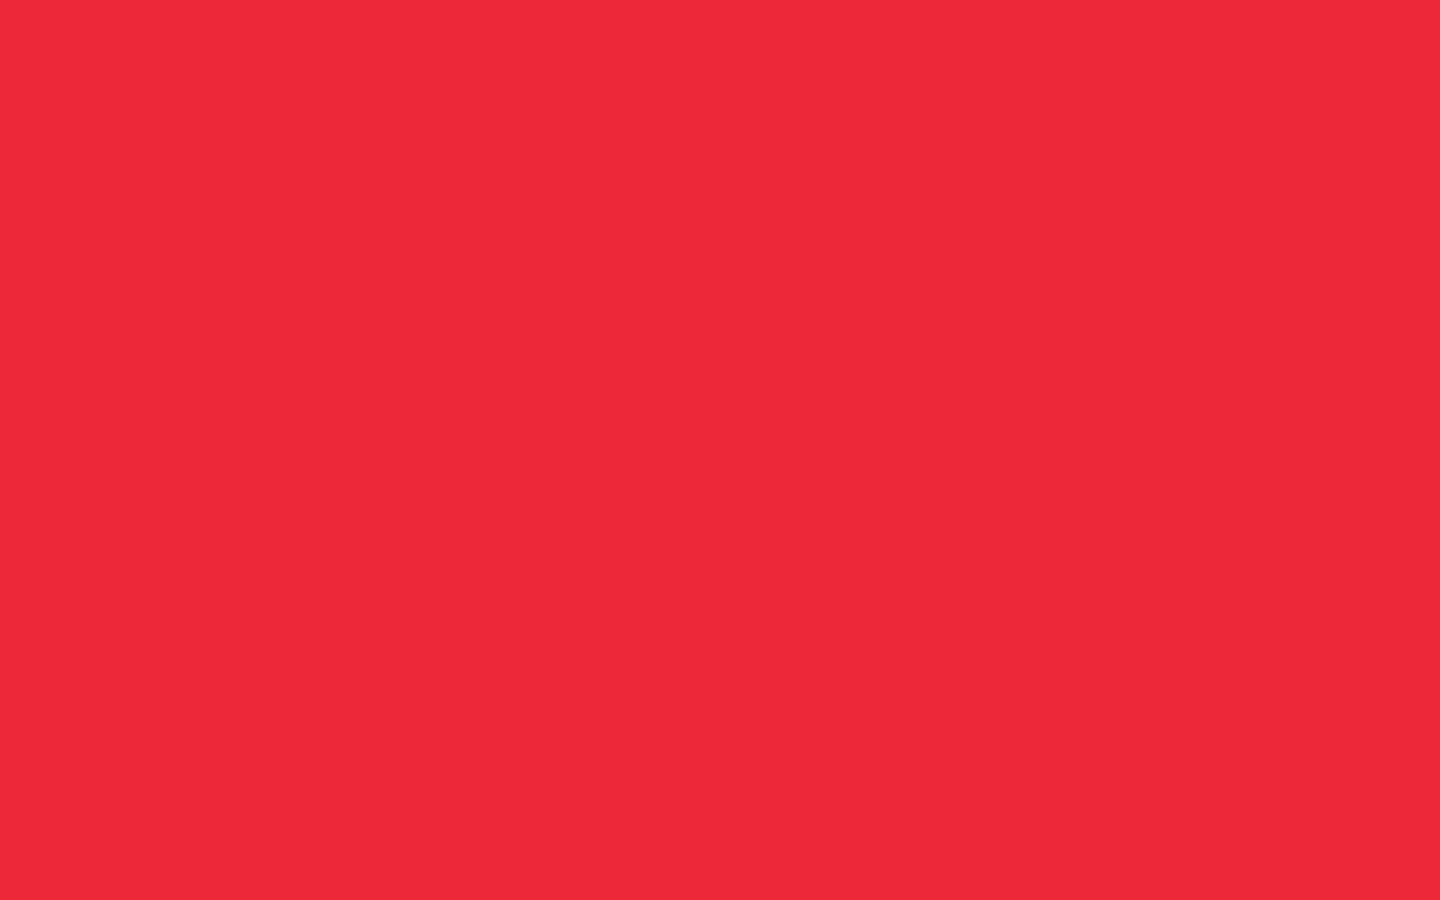 1440x900 Red Pantone Solid Color Background